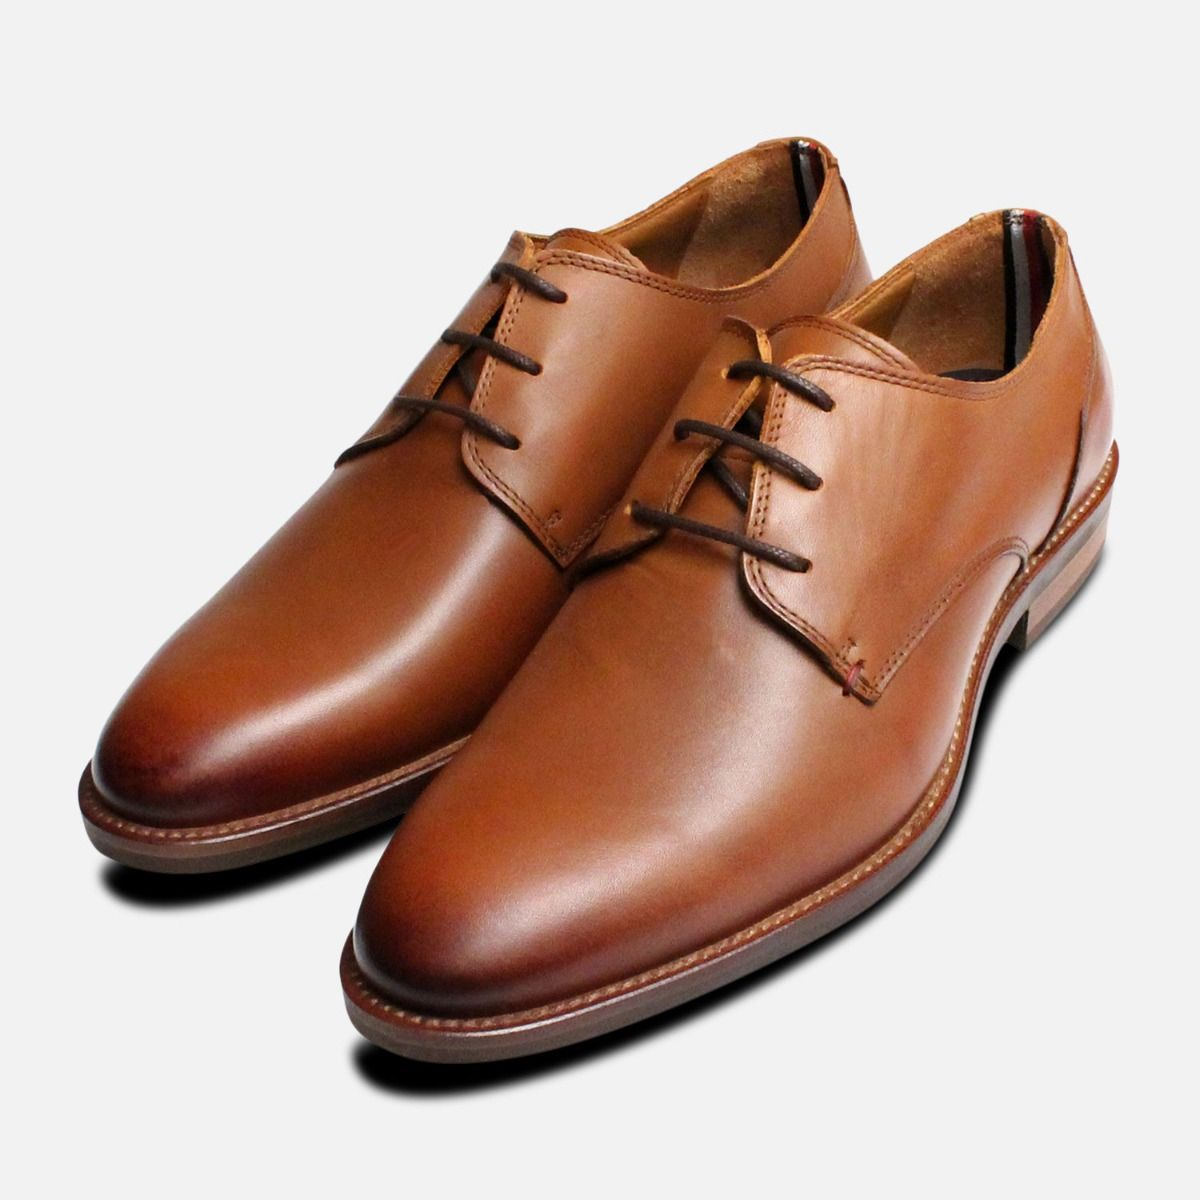 077026fcd Cognac Brown Tommy Hilfiger Daytona Shoes